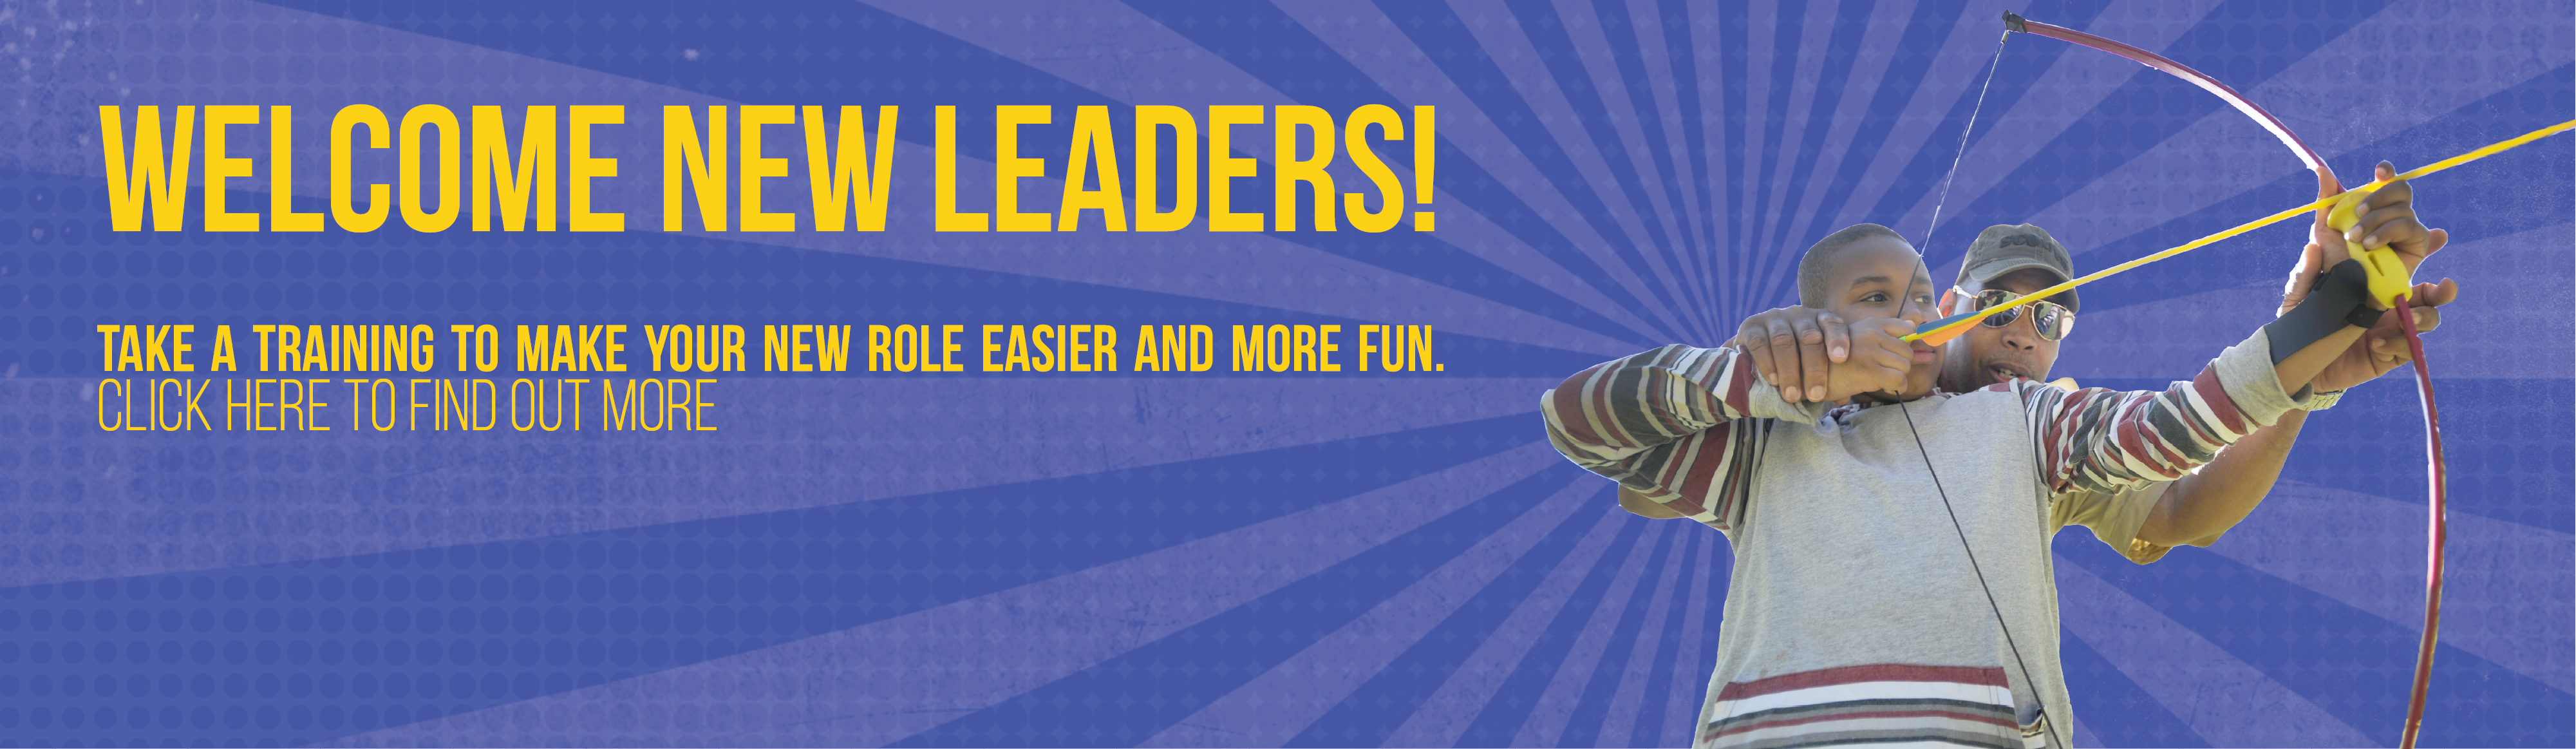 Get Trained as a Cub Scout Leader, Click Here